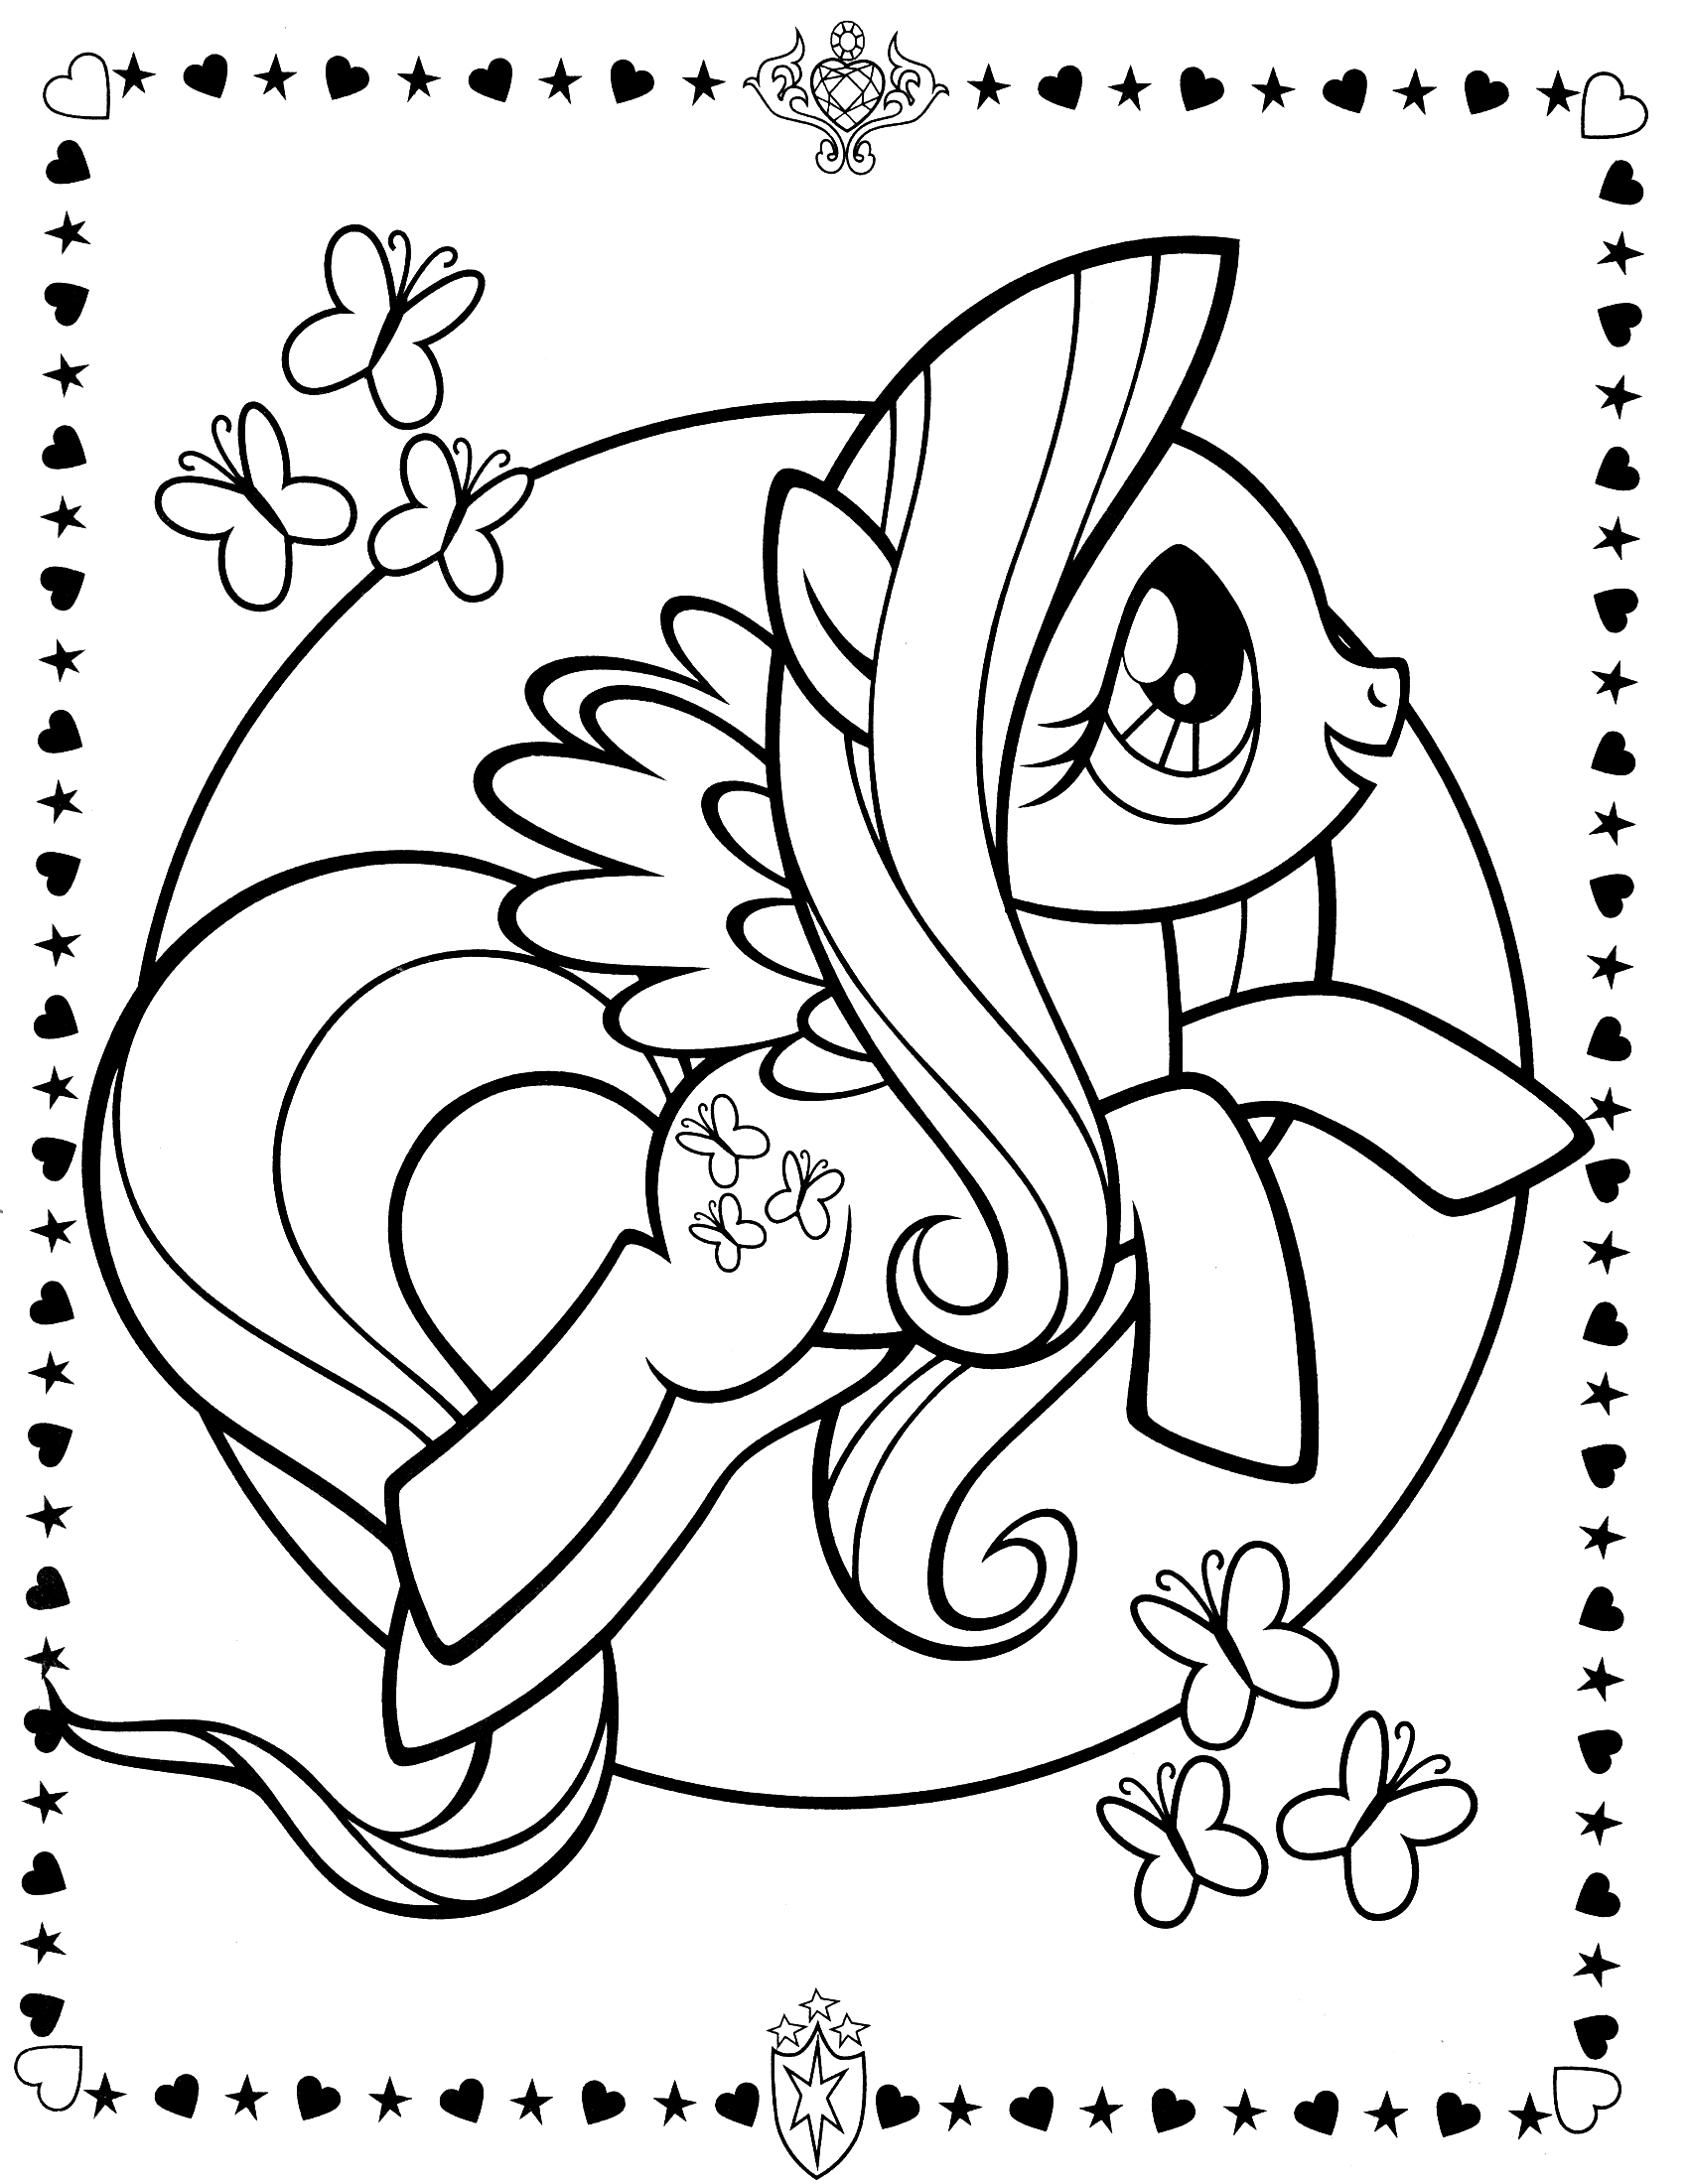 Fluttershy (My Little Pony) coloring #2, Download drawings